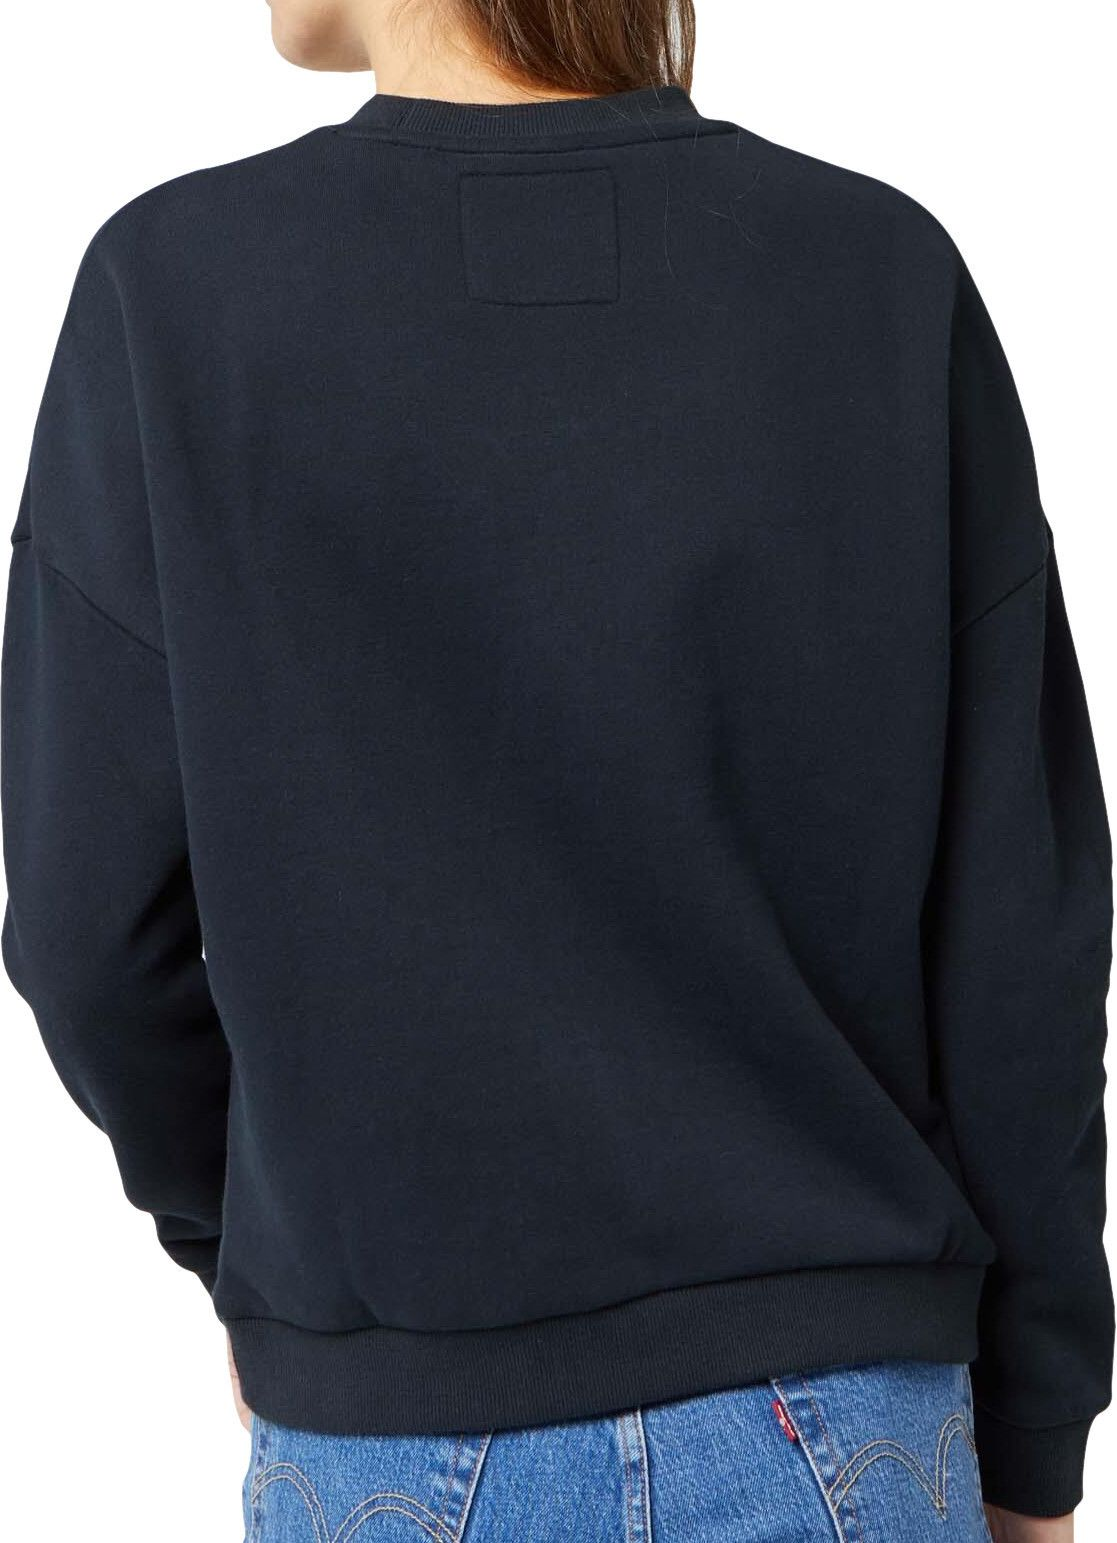 Superdry-Hoodie-Women-039-s-Tops-Assorted-Styles thumbnail 60